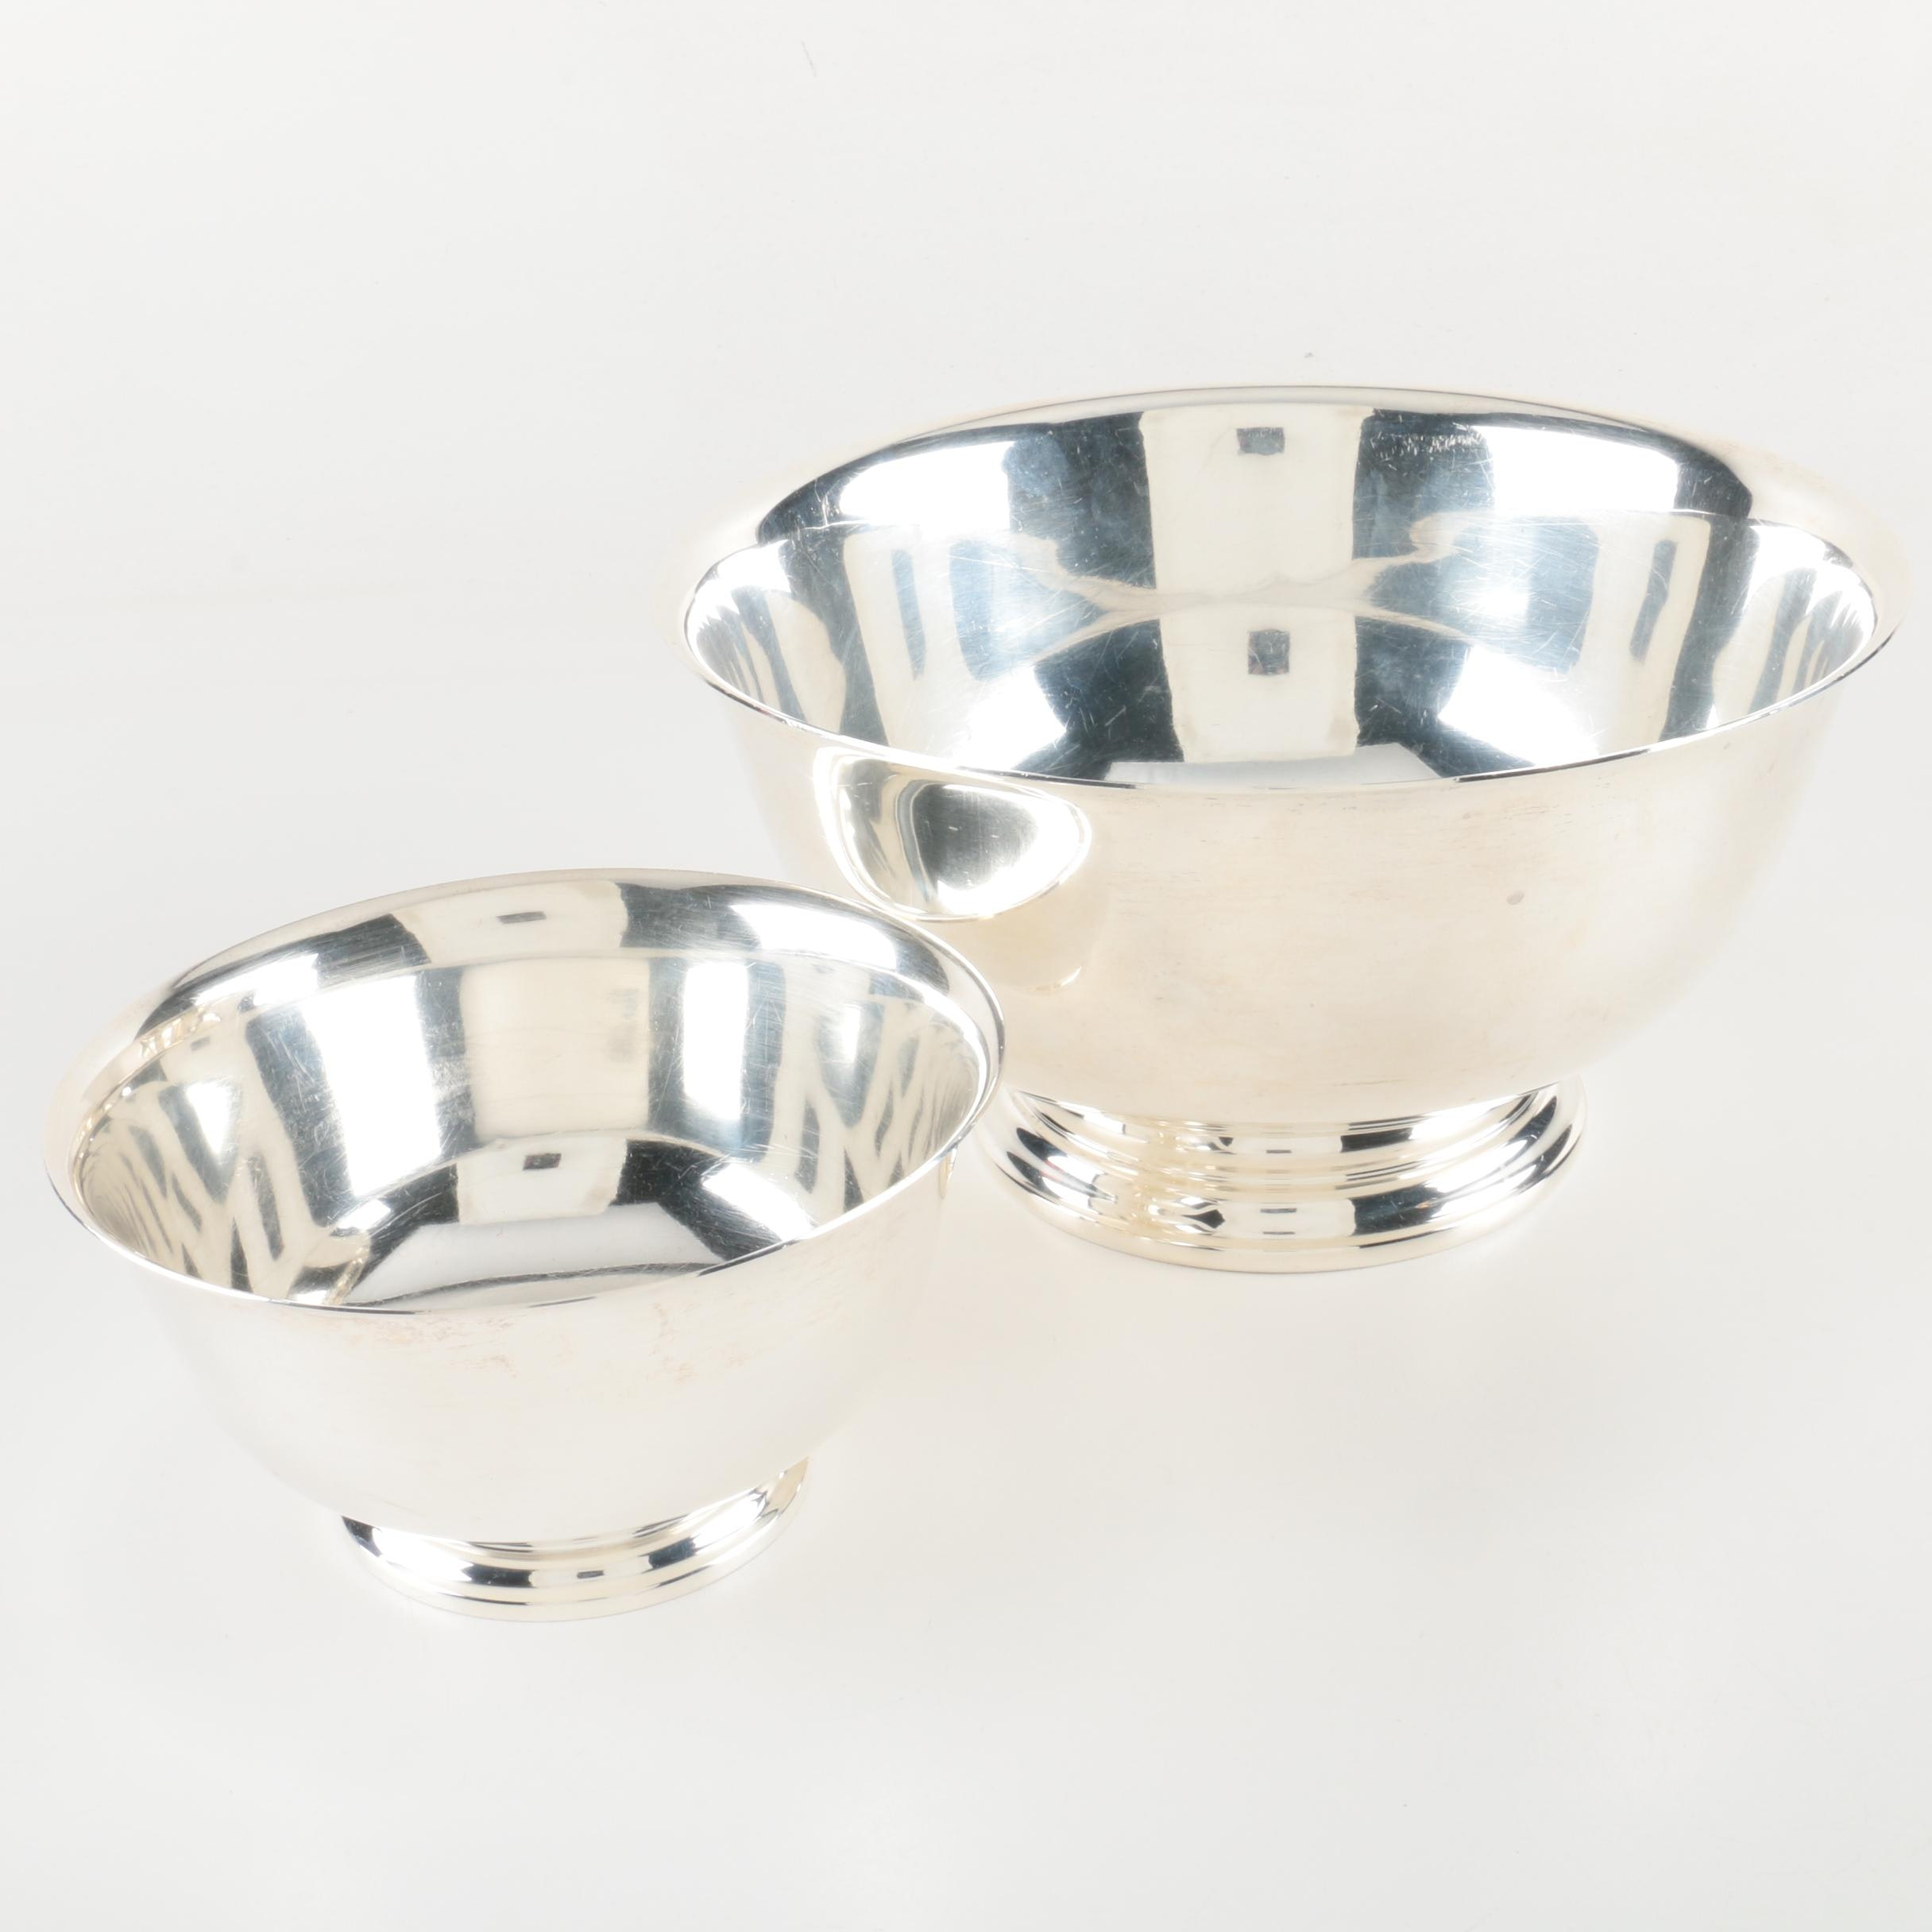 Paul Revere Reproduction Sterling Silver Bowls